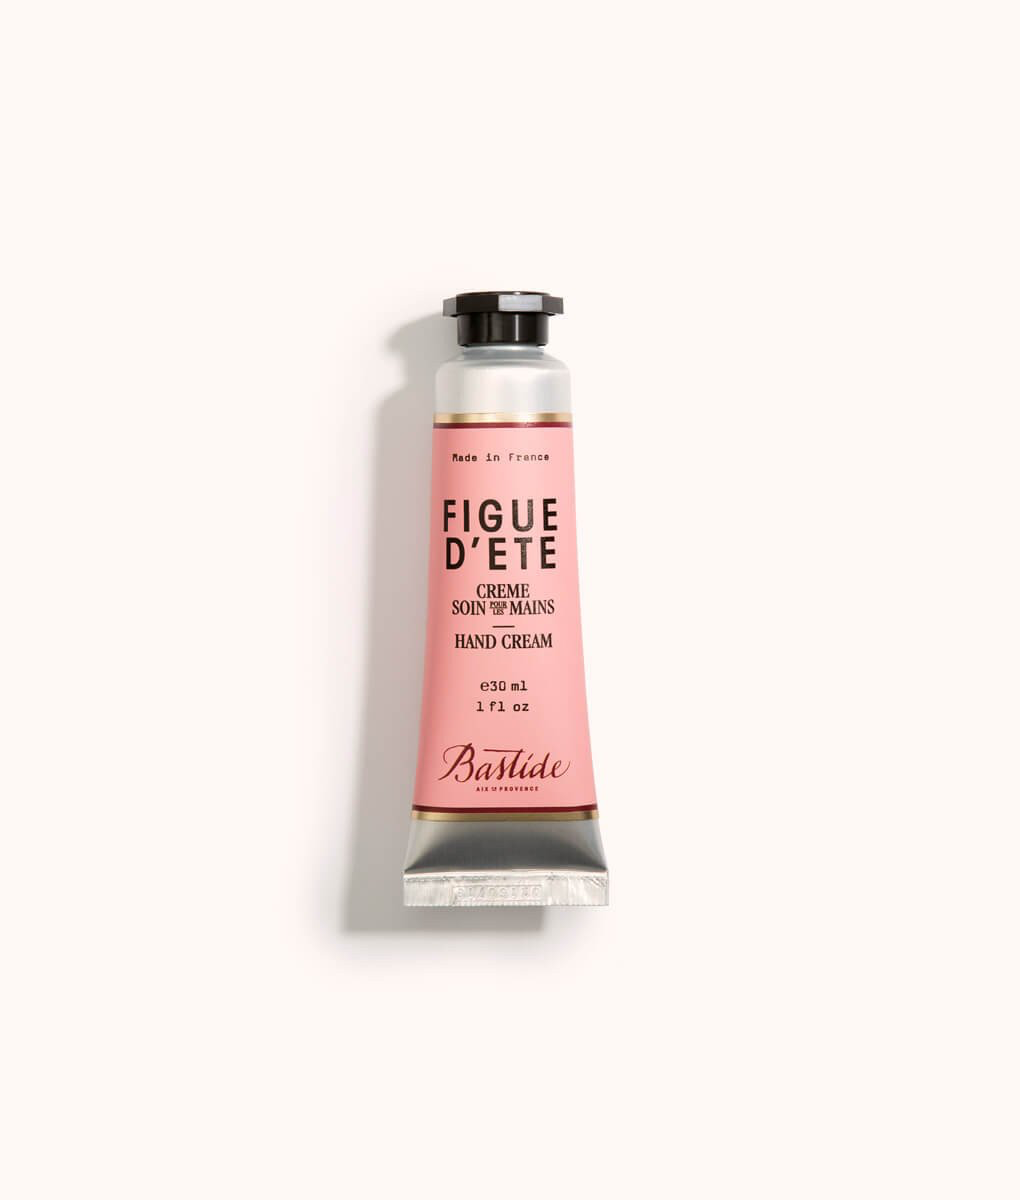 Figue Hand Lotion,  $12